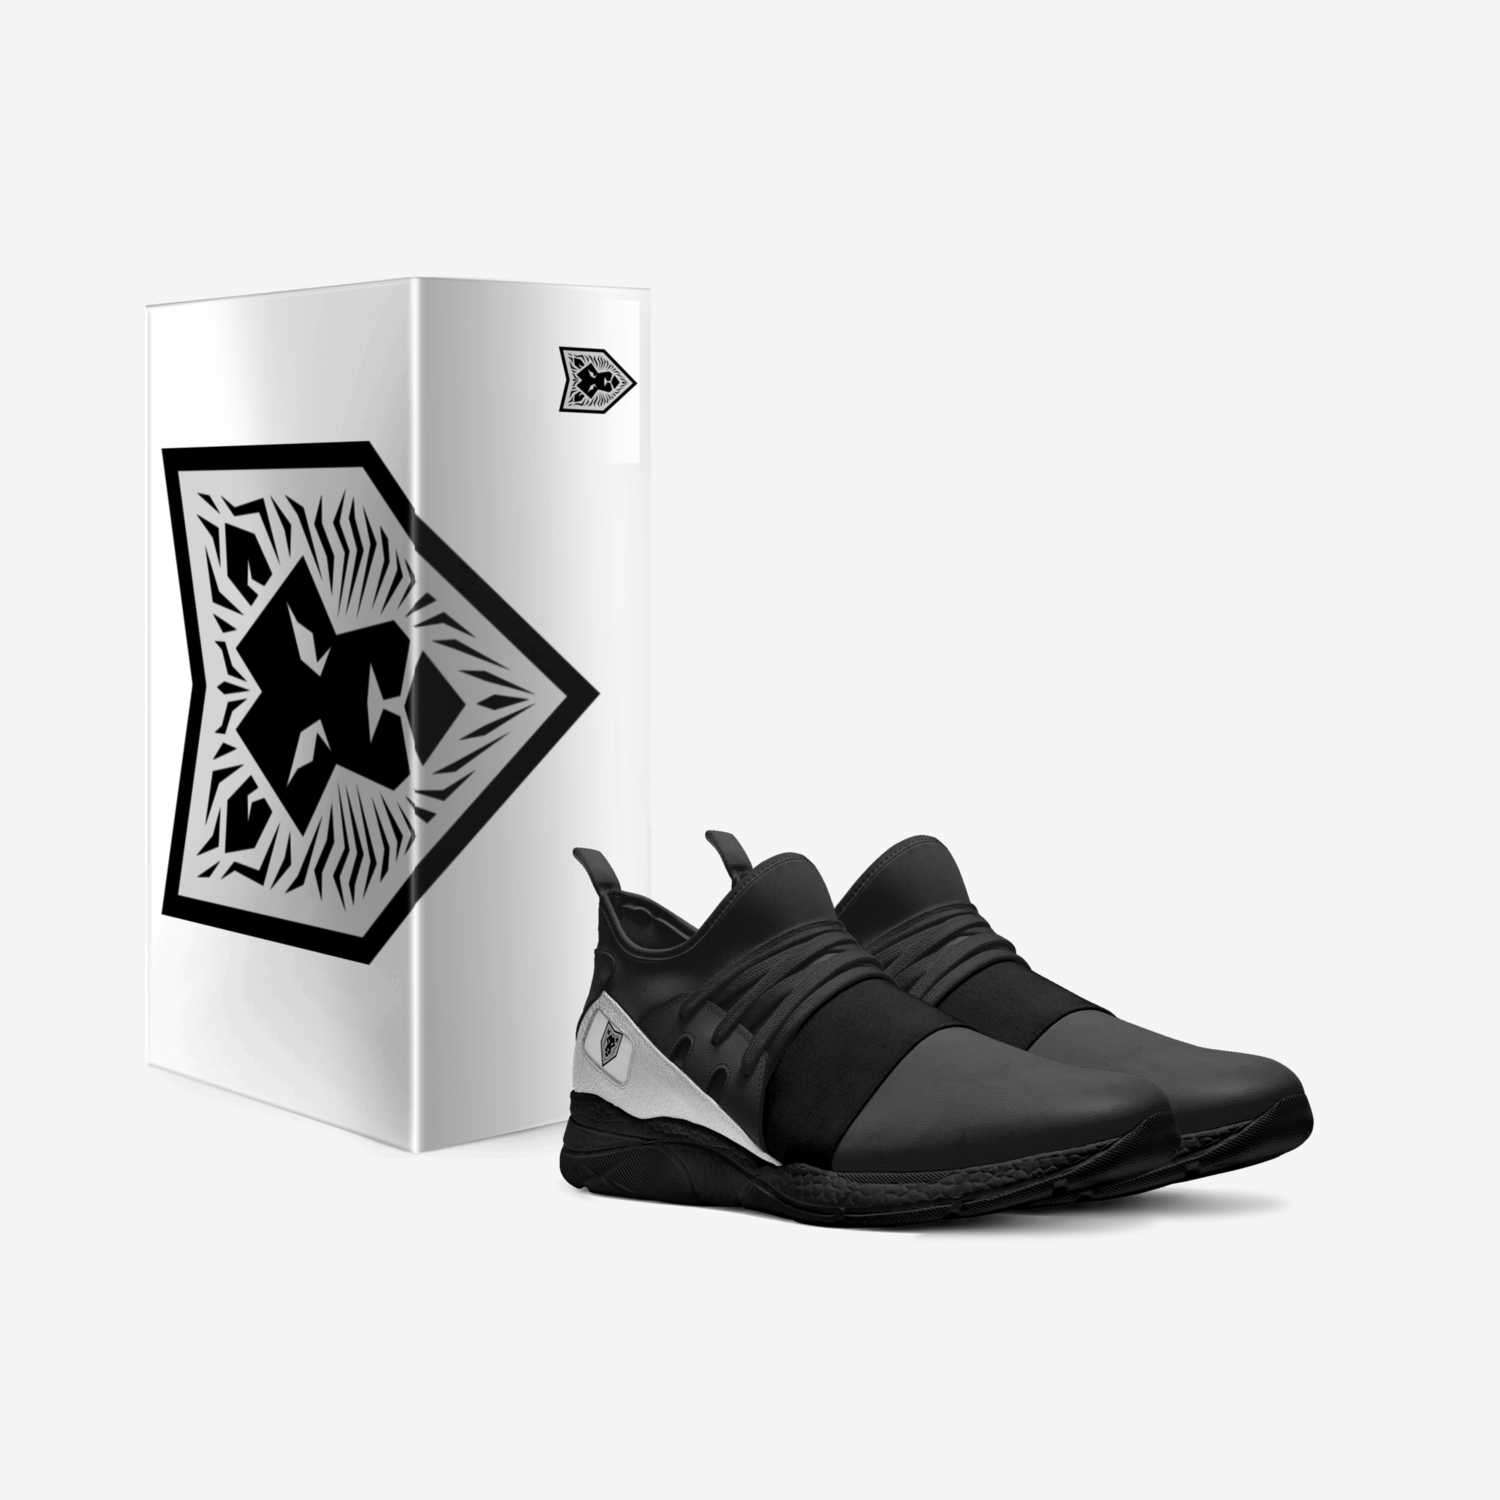 Lion of Judah 82:6 custom made in Italy shoes by Jake Tayler Jacobs | Box view